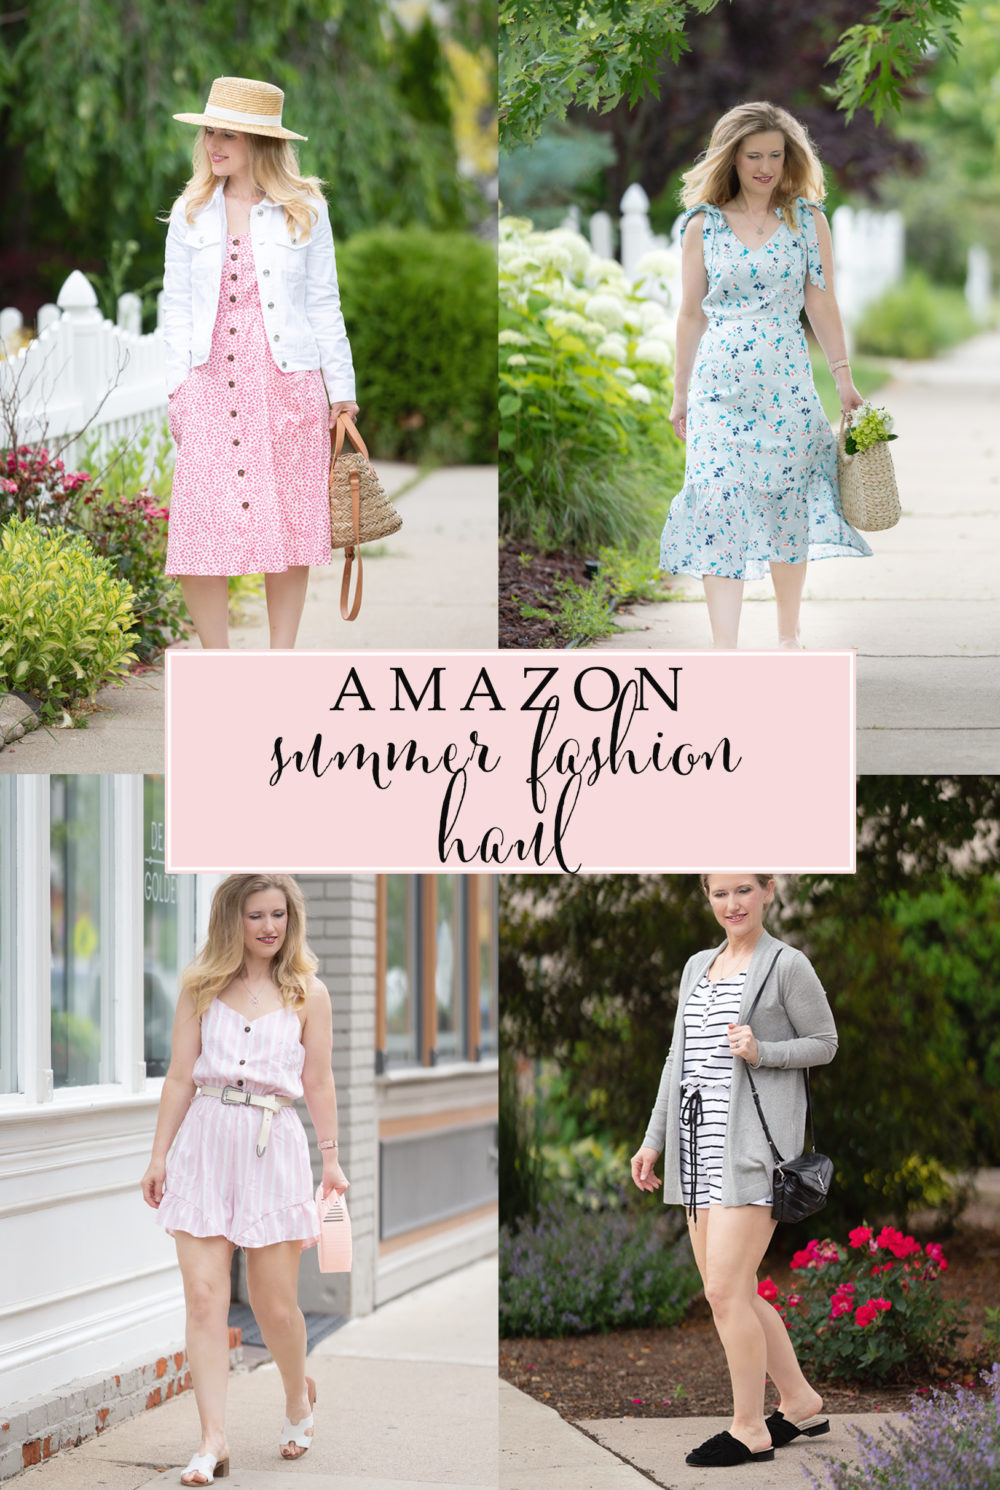 Amazon Dresses | Amazon Summer Fashion